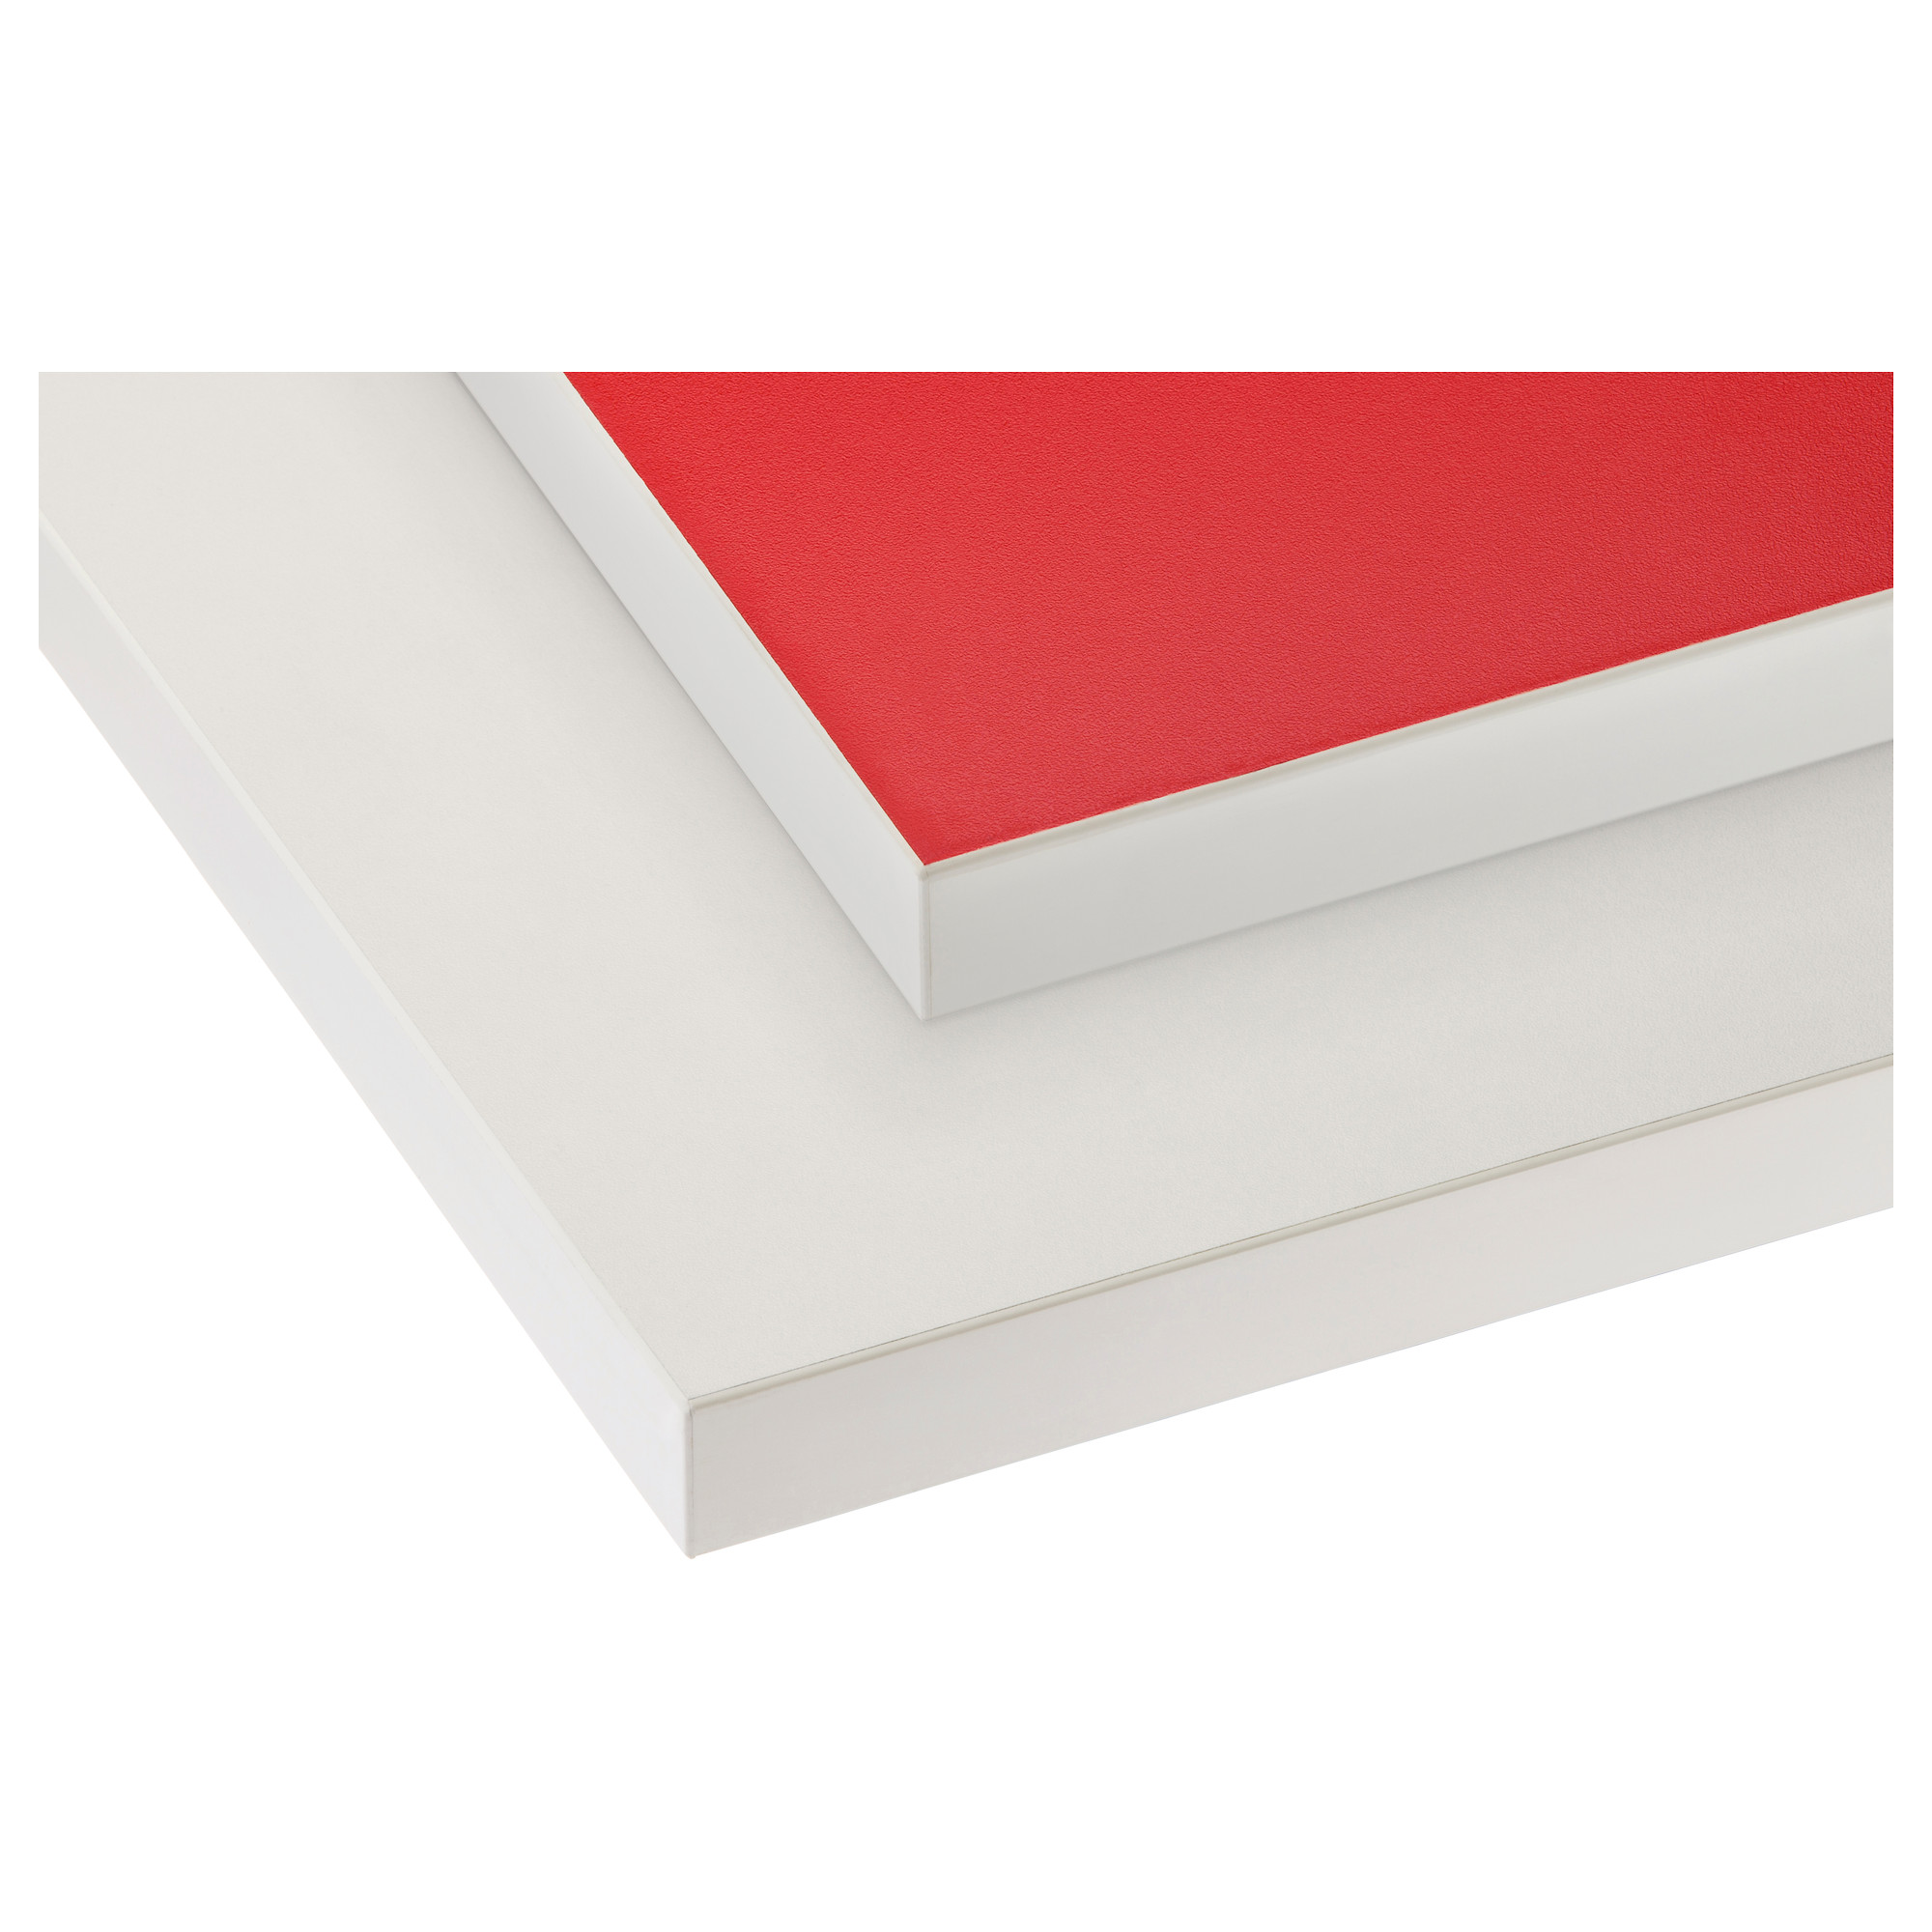 Standard Bench Top Double Sided - White and Red Double